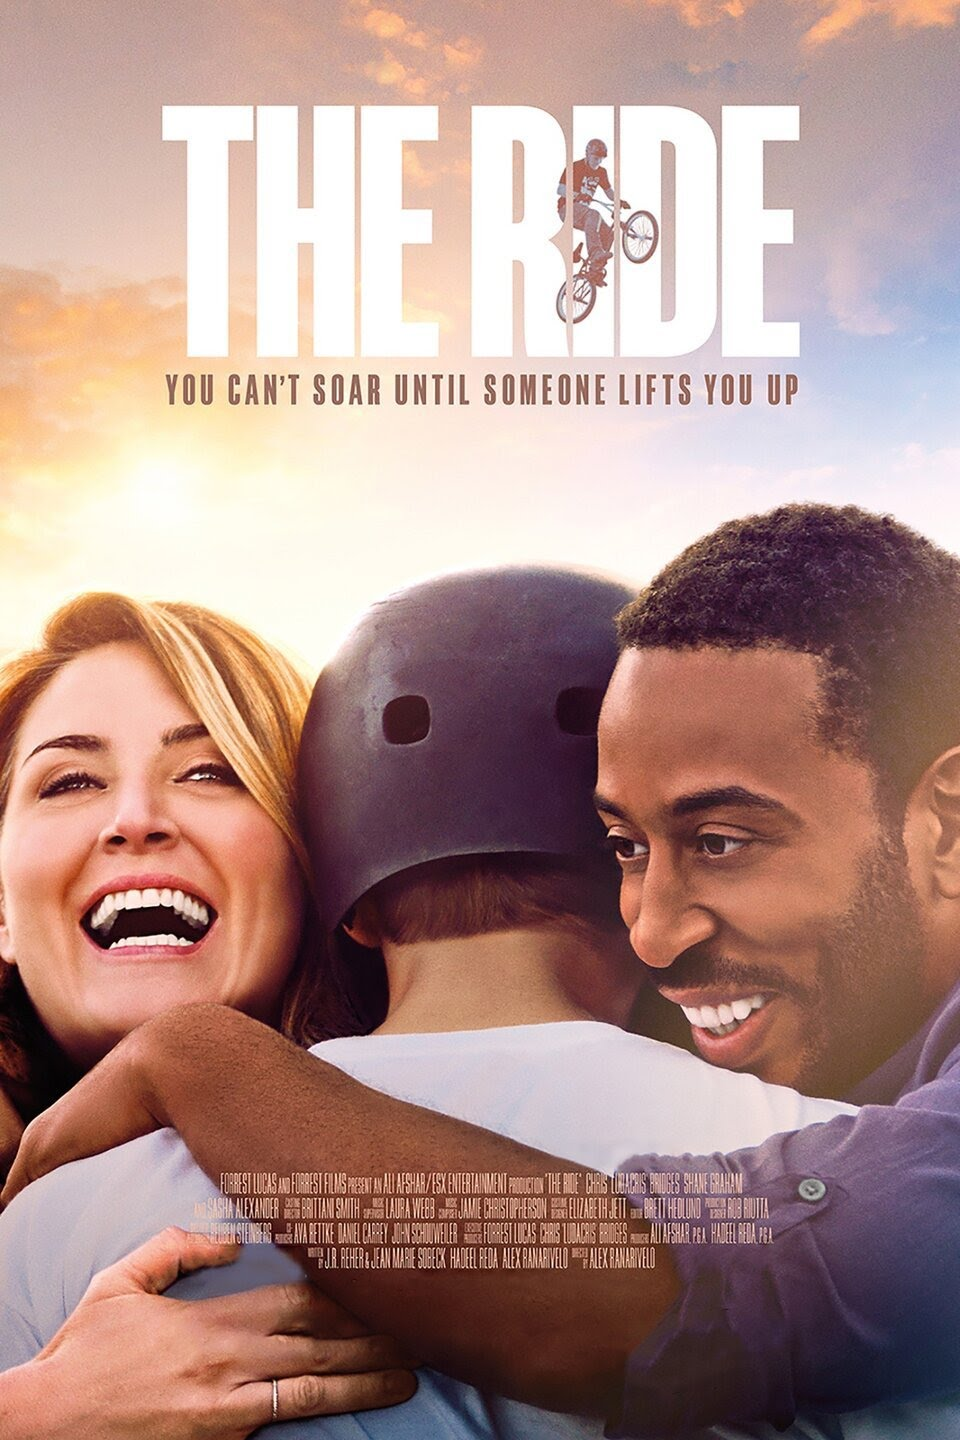 Ride Review Amazon Prime: A Fine Intentioned Adoption Drama That Can't Triumph Over Racism